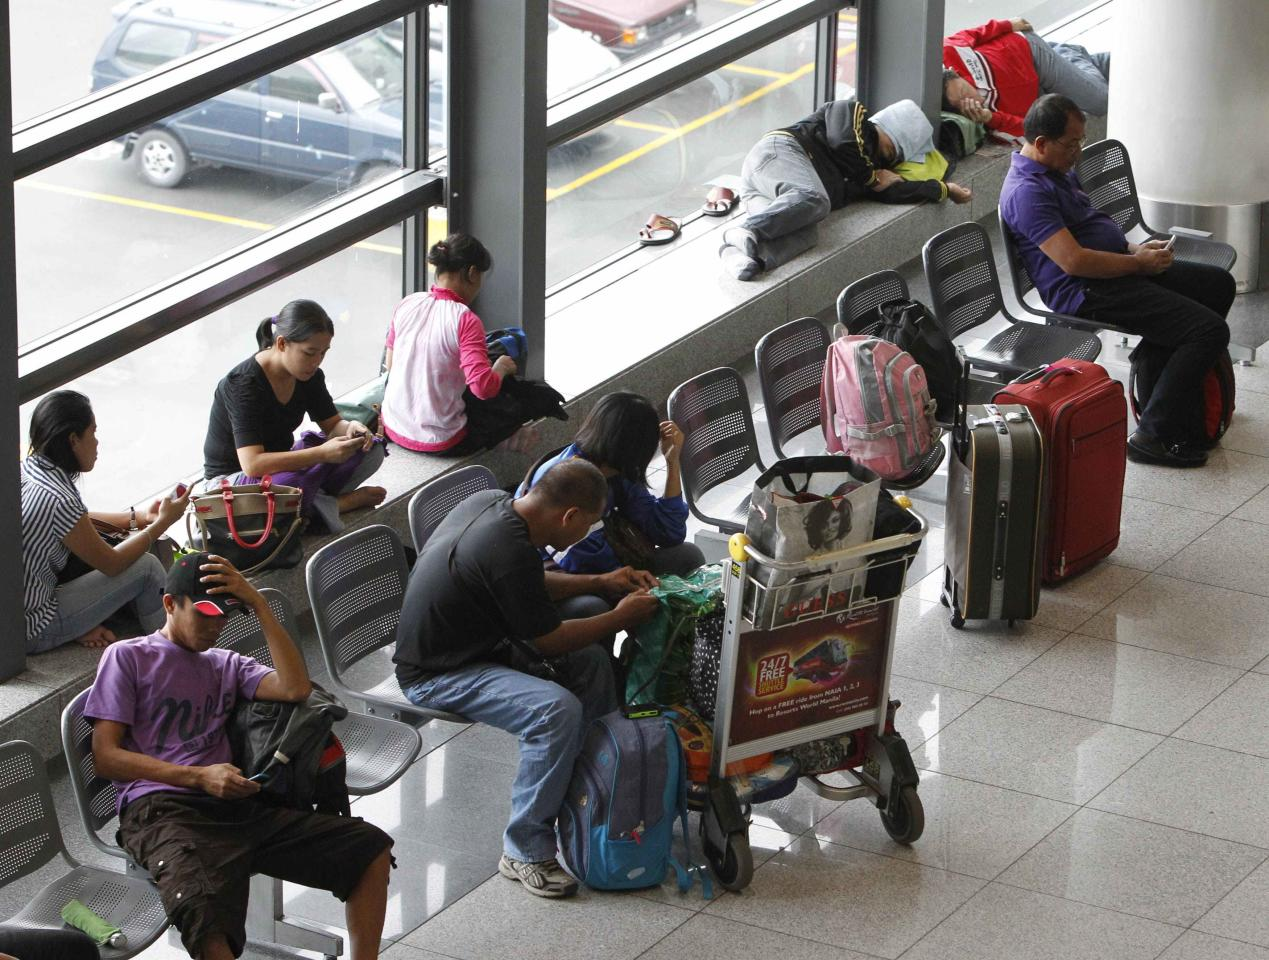 Stranded passengers wait at the lobby of Ninoy Aquino International airport in Pasay city, metro Manila November 8, 2013 after nearly 200 local flights have been suspended due to Typhoon Haiyan that hit central Philippines. Typhoon Haiyan, the strongest storm on earth this year, slammed into the Philippines' central islands on Friday forcing millions of people to move to safer ground and storm shelters, cutting power and phone lines, and grounding air and sea transport. The maximum category-five super typhoon, with destructive winds gusting of up to 275 kph (170 mph), whipped up giant waves as high as 4-5 meters (12-15 feet) that lashed the islands of Leyte and Samar, and was on track to hit holiday destinations REUTERS/Romeo Ranoco (PHILIPPINES - Tags: DISASTER ENVIRONMENT TRANSPORT)